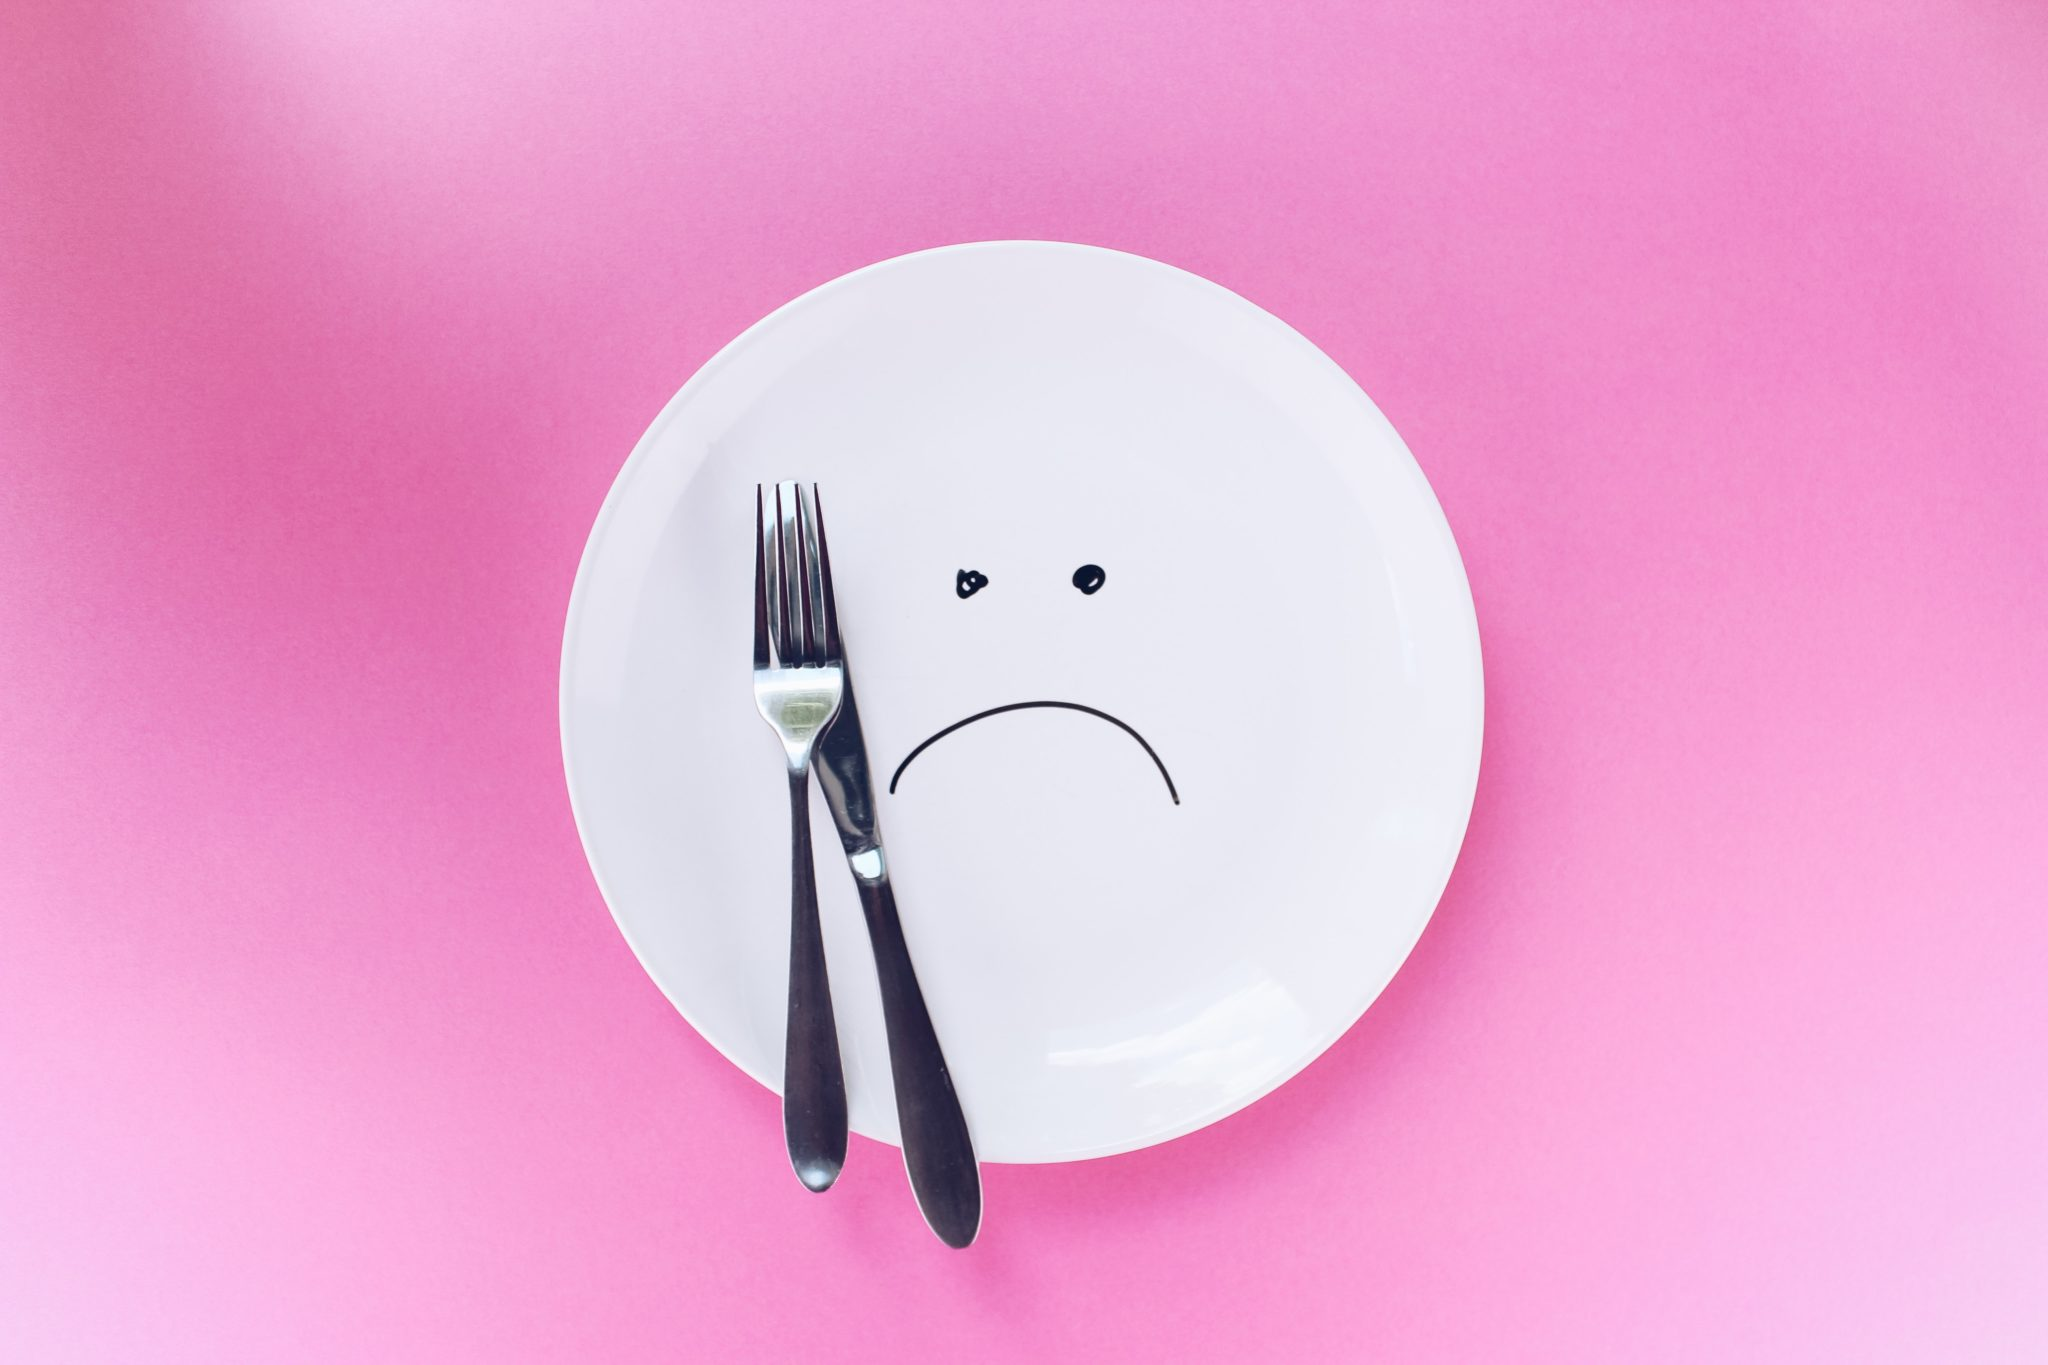 image of a plate with a sad face drawn on top next to a fork and knife against a pink background